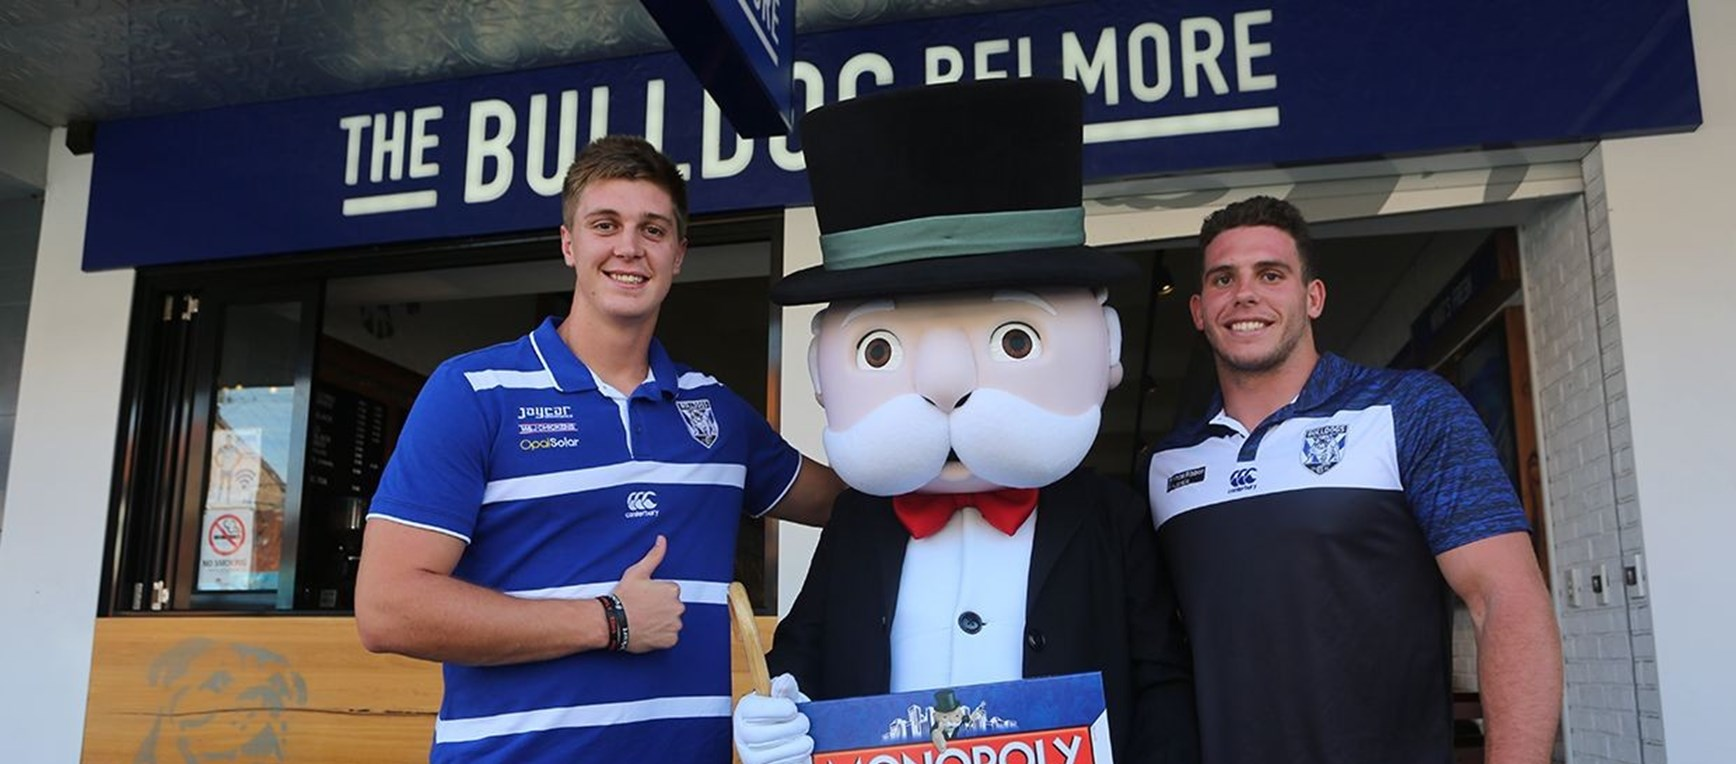 Monopoly Launched at The Bulldog Belmore